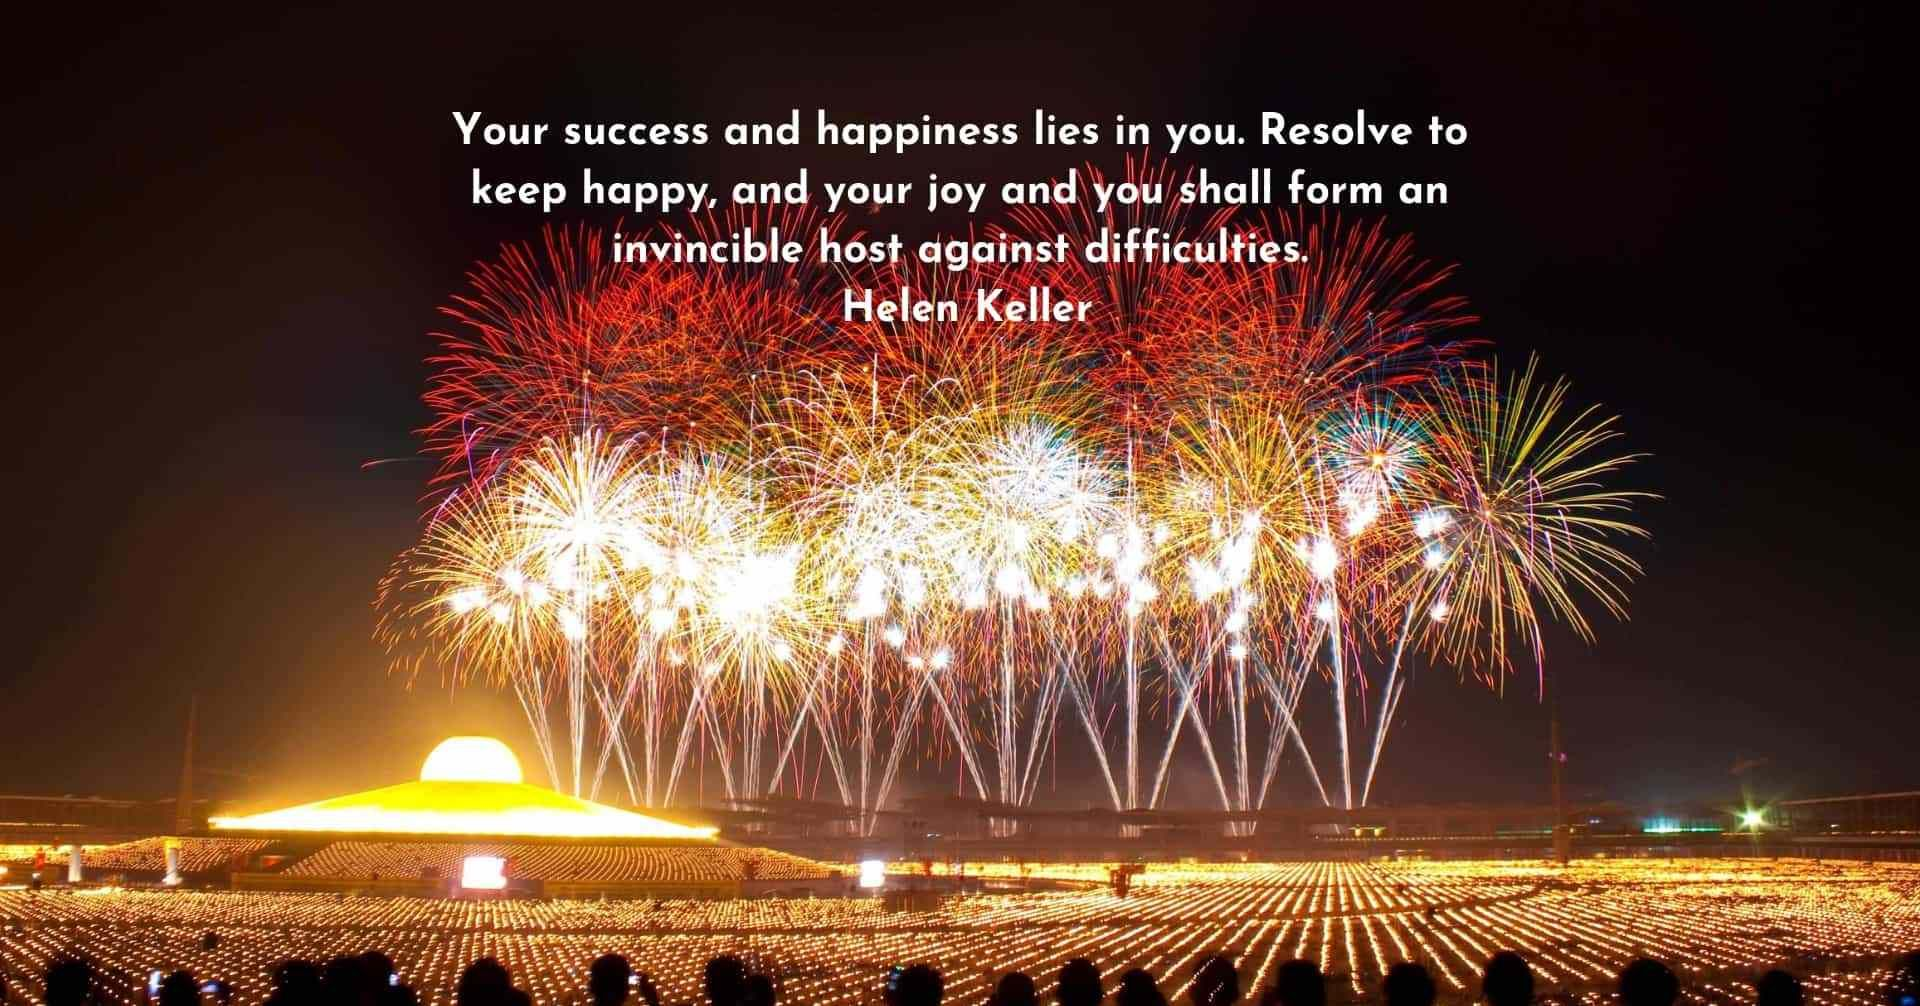 Happy New Year Quotes 2020 Best New Year Inspirational